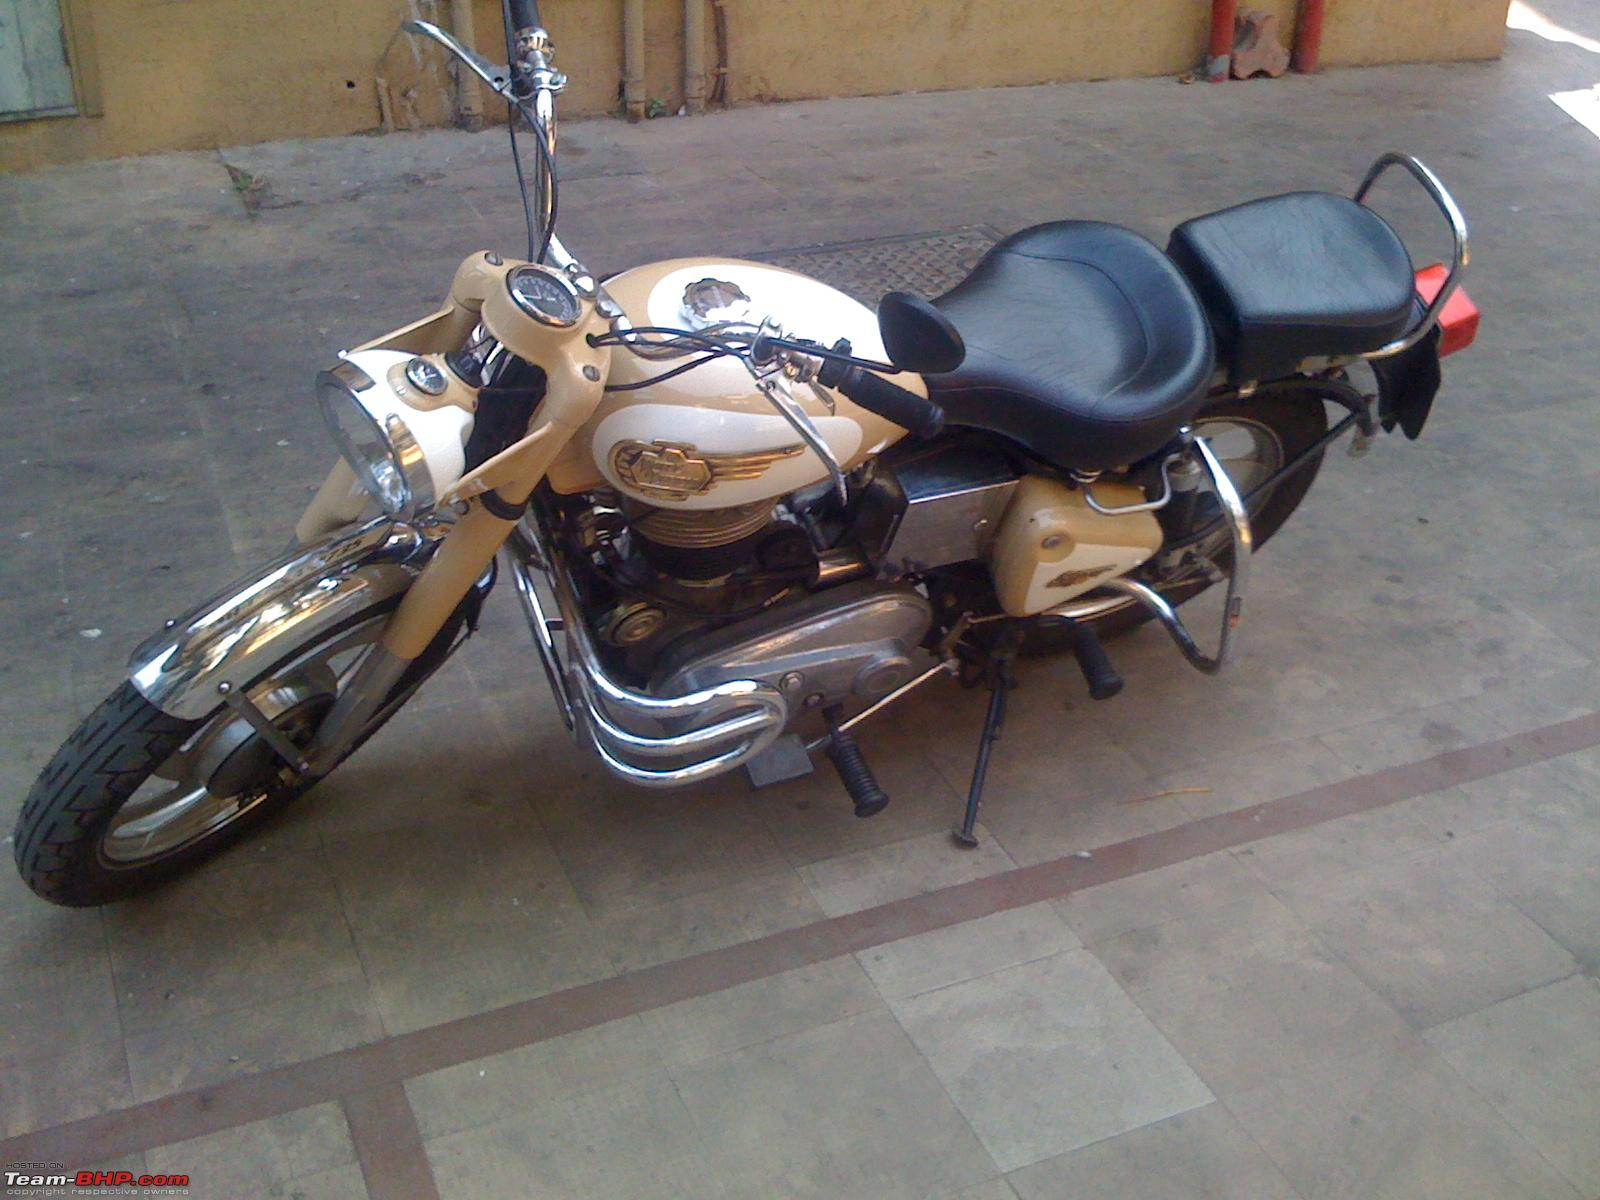 Modified Indian bikes - Post your pics here and ONLY here